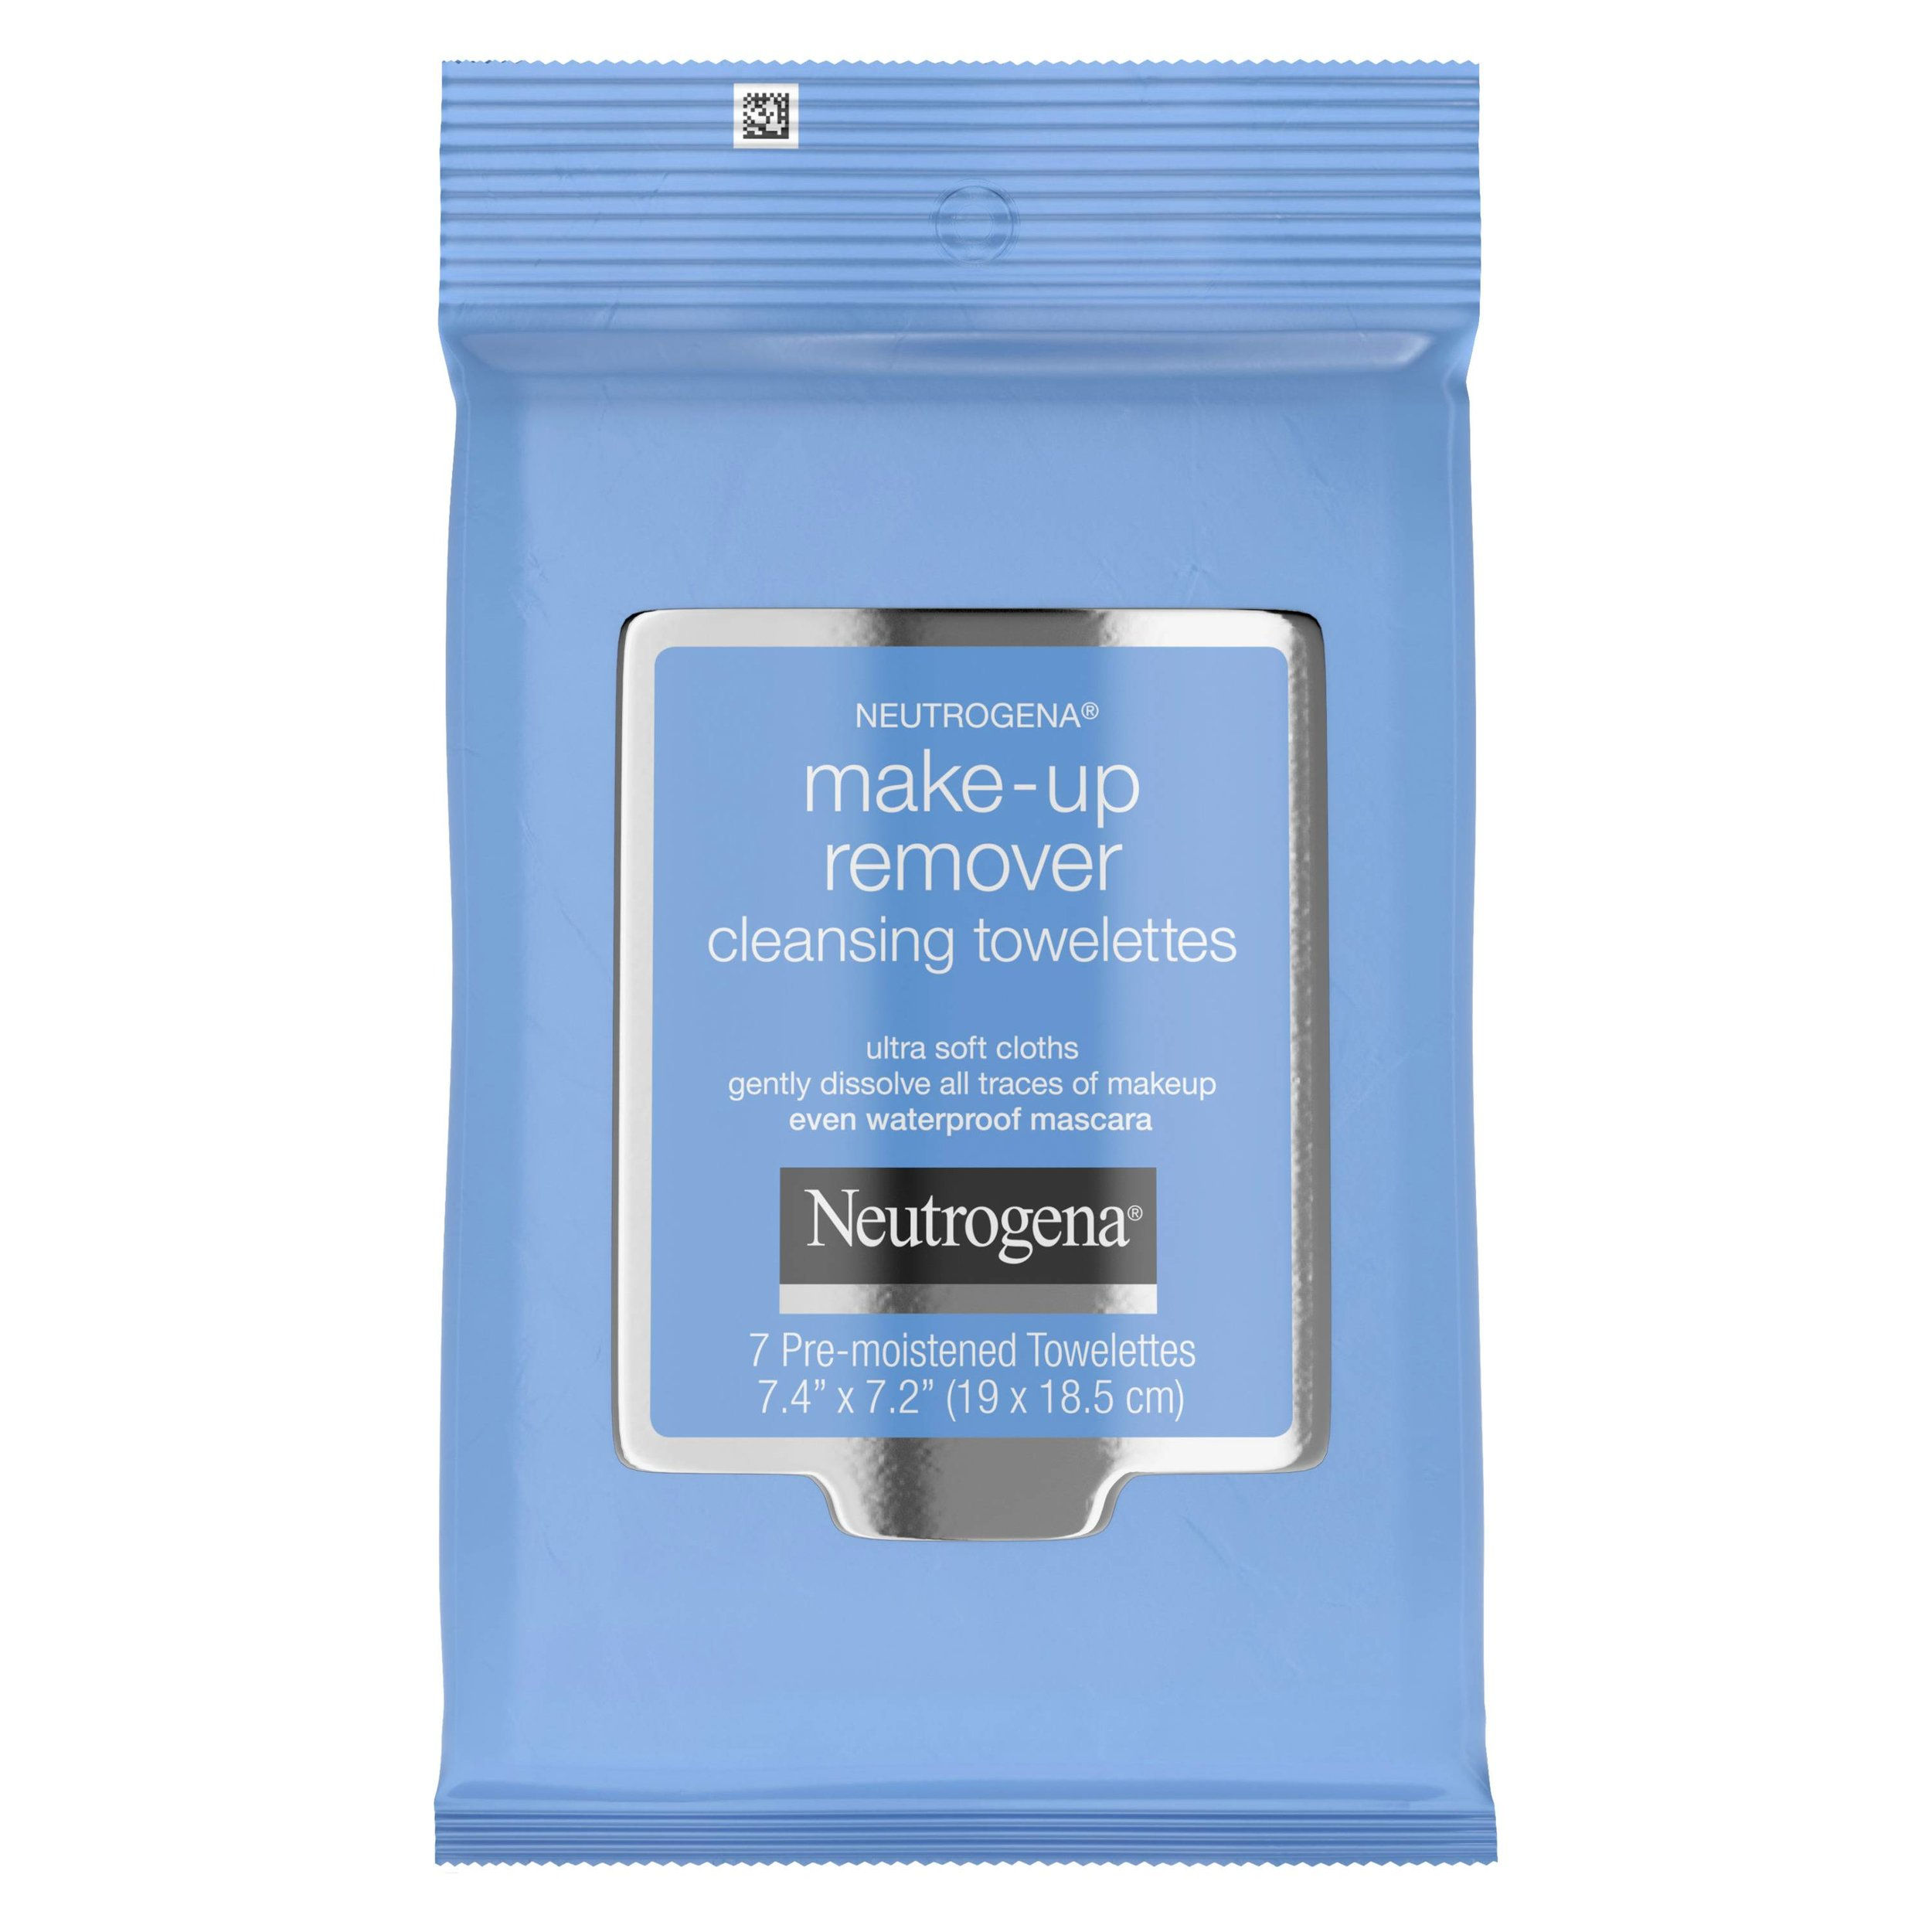 Neutrogena Makeup Remover Cleansing Towelettes & Wipes Travel Size